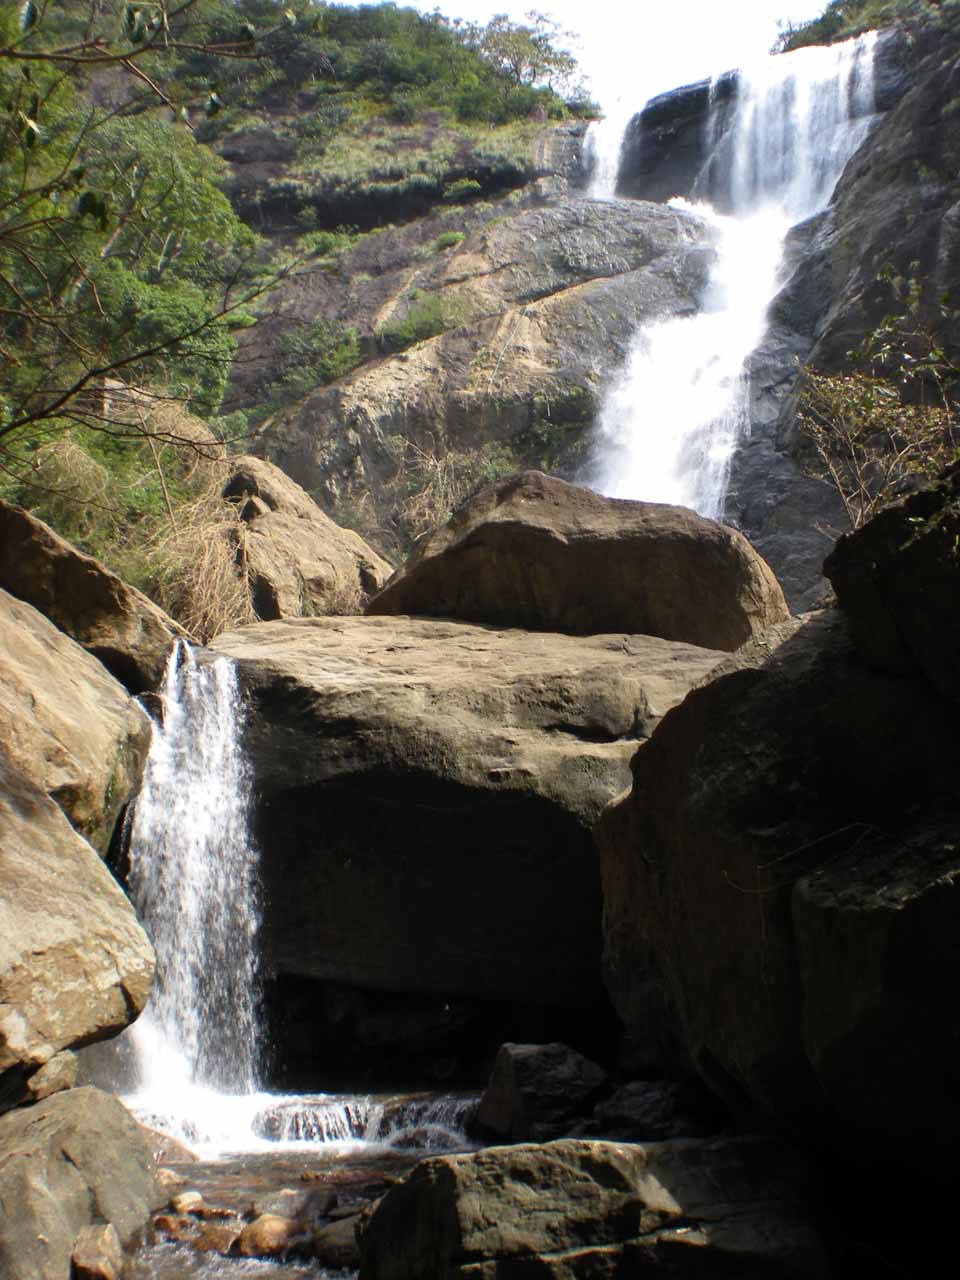 This was what Palaruvi Falls looked like from the ladies only side